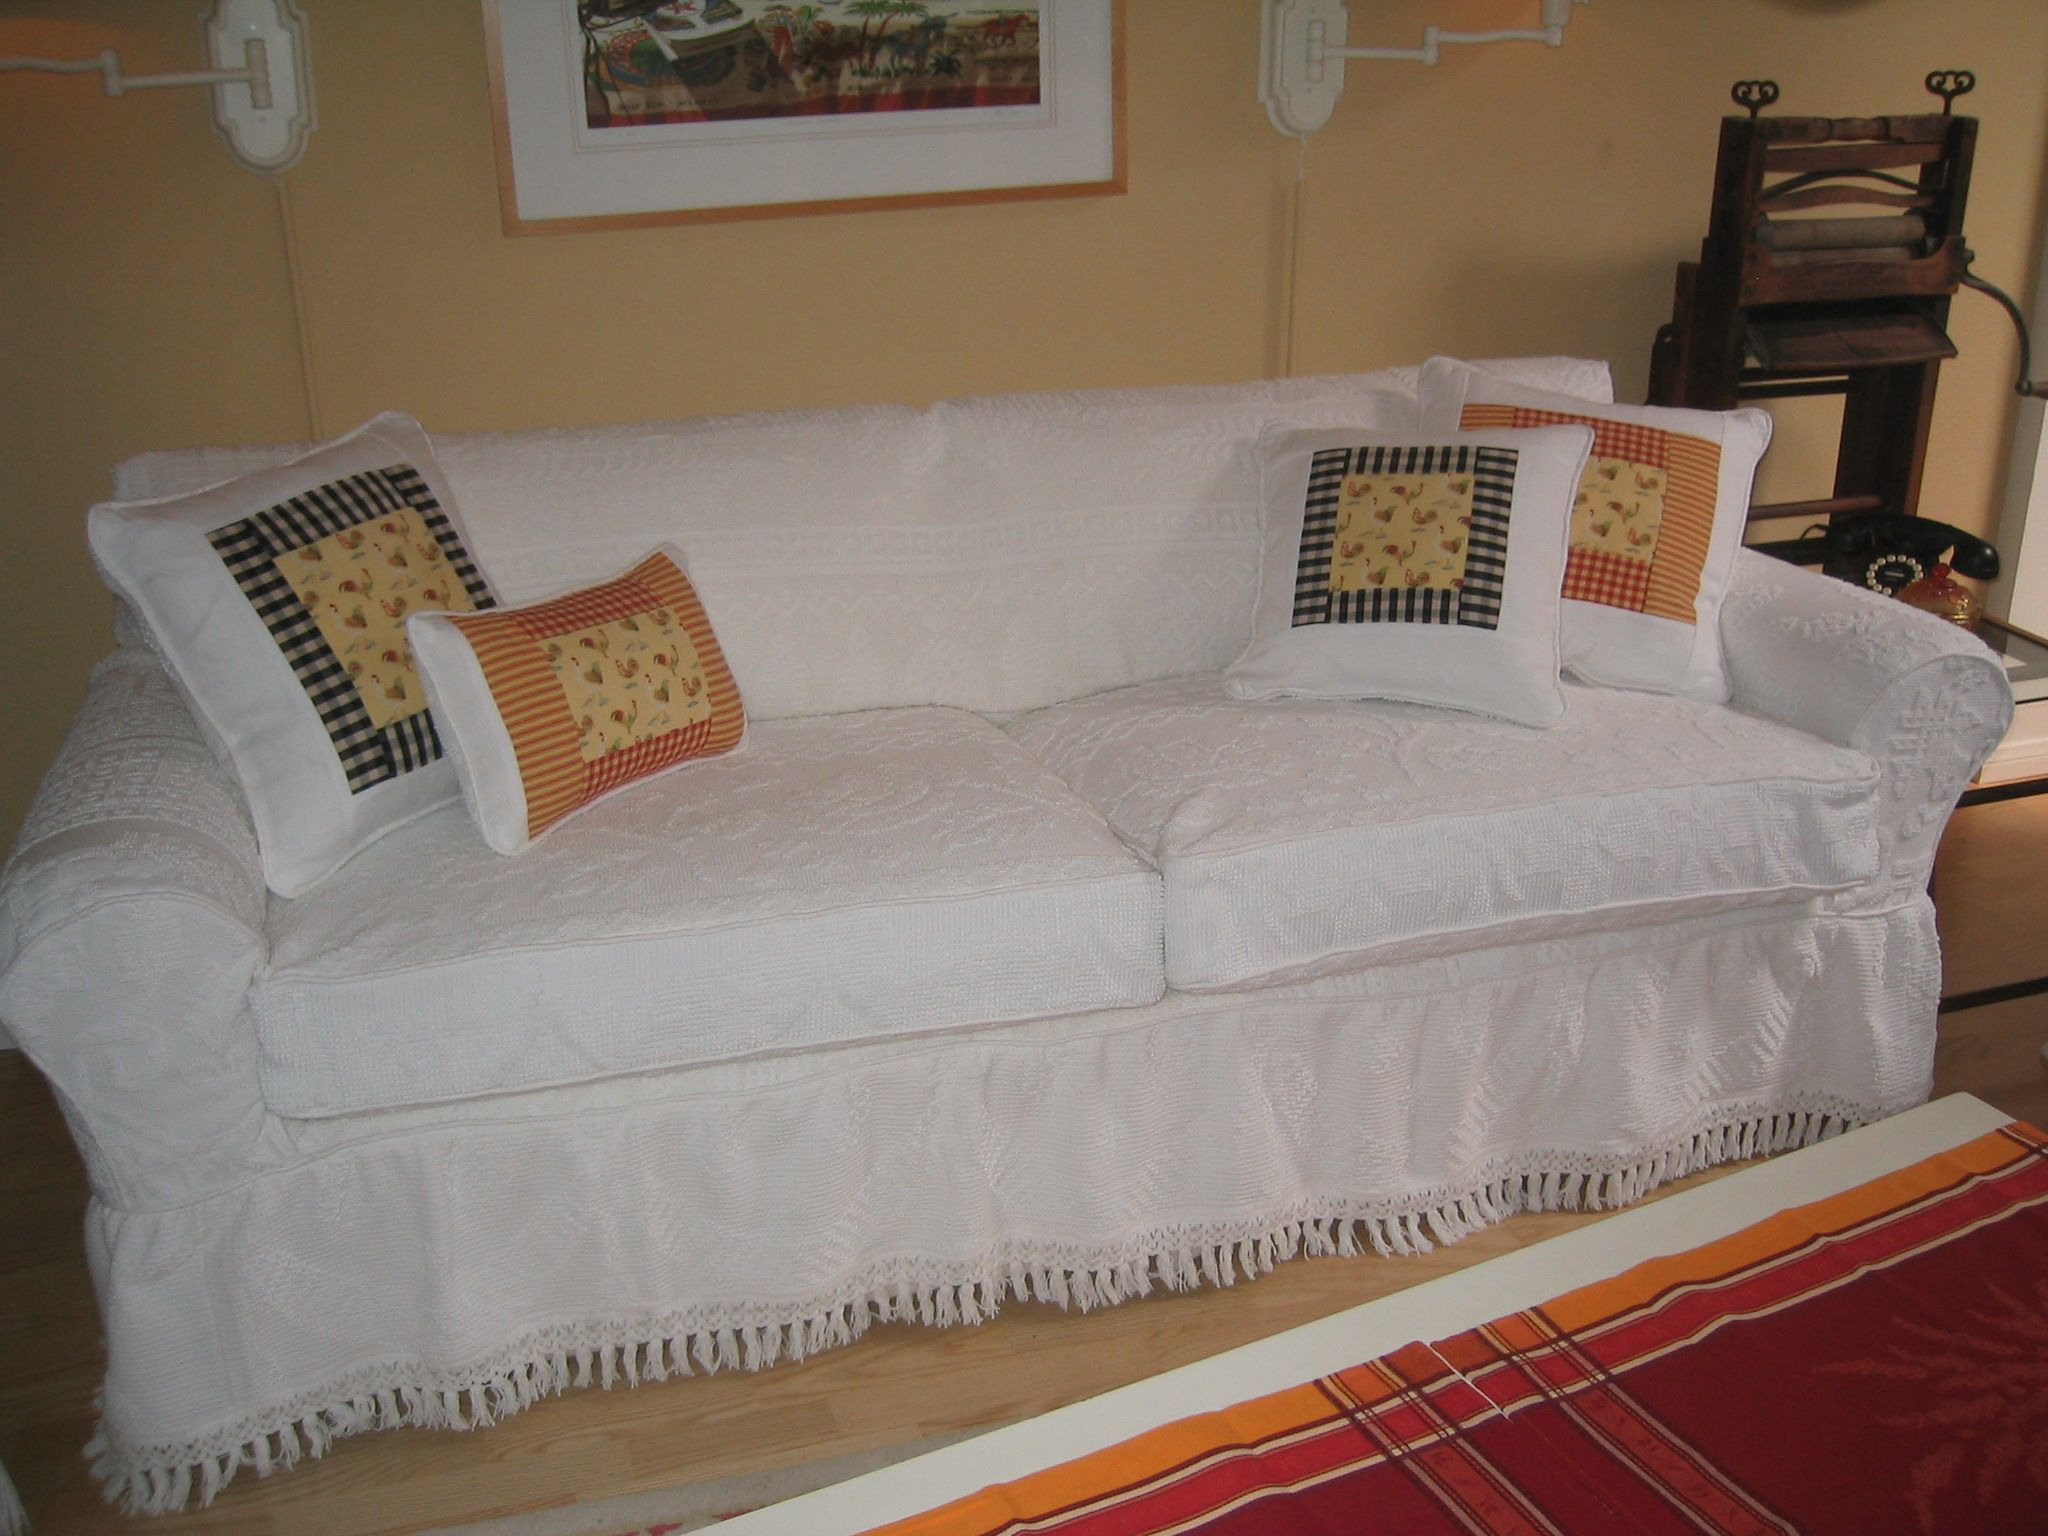 quilted embroidery sectional sofa couch slipcovers furniture protector cotton sofas sears canada slipcover made from vintage chenille bedspreads my